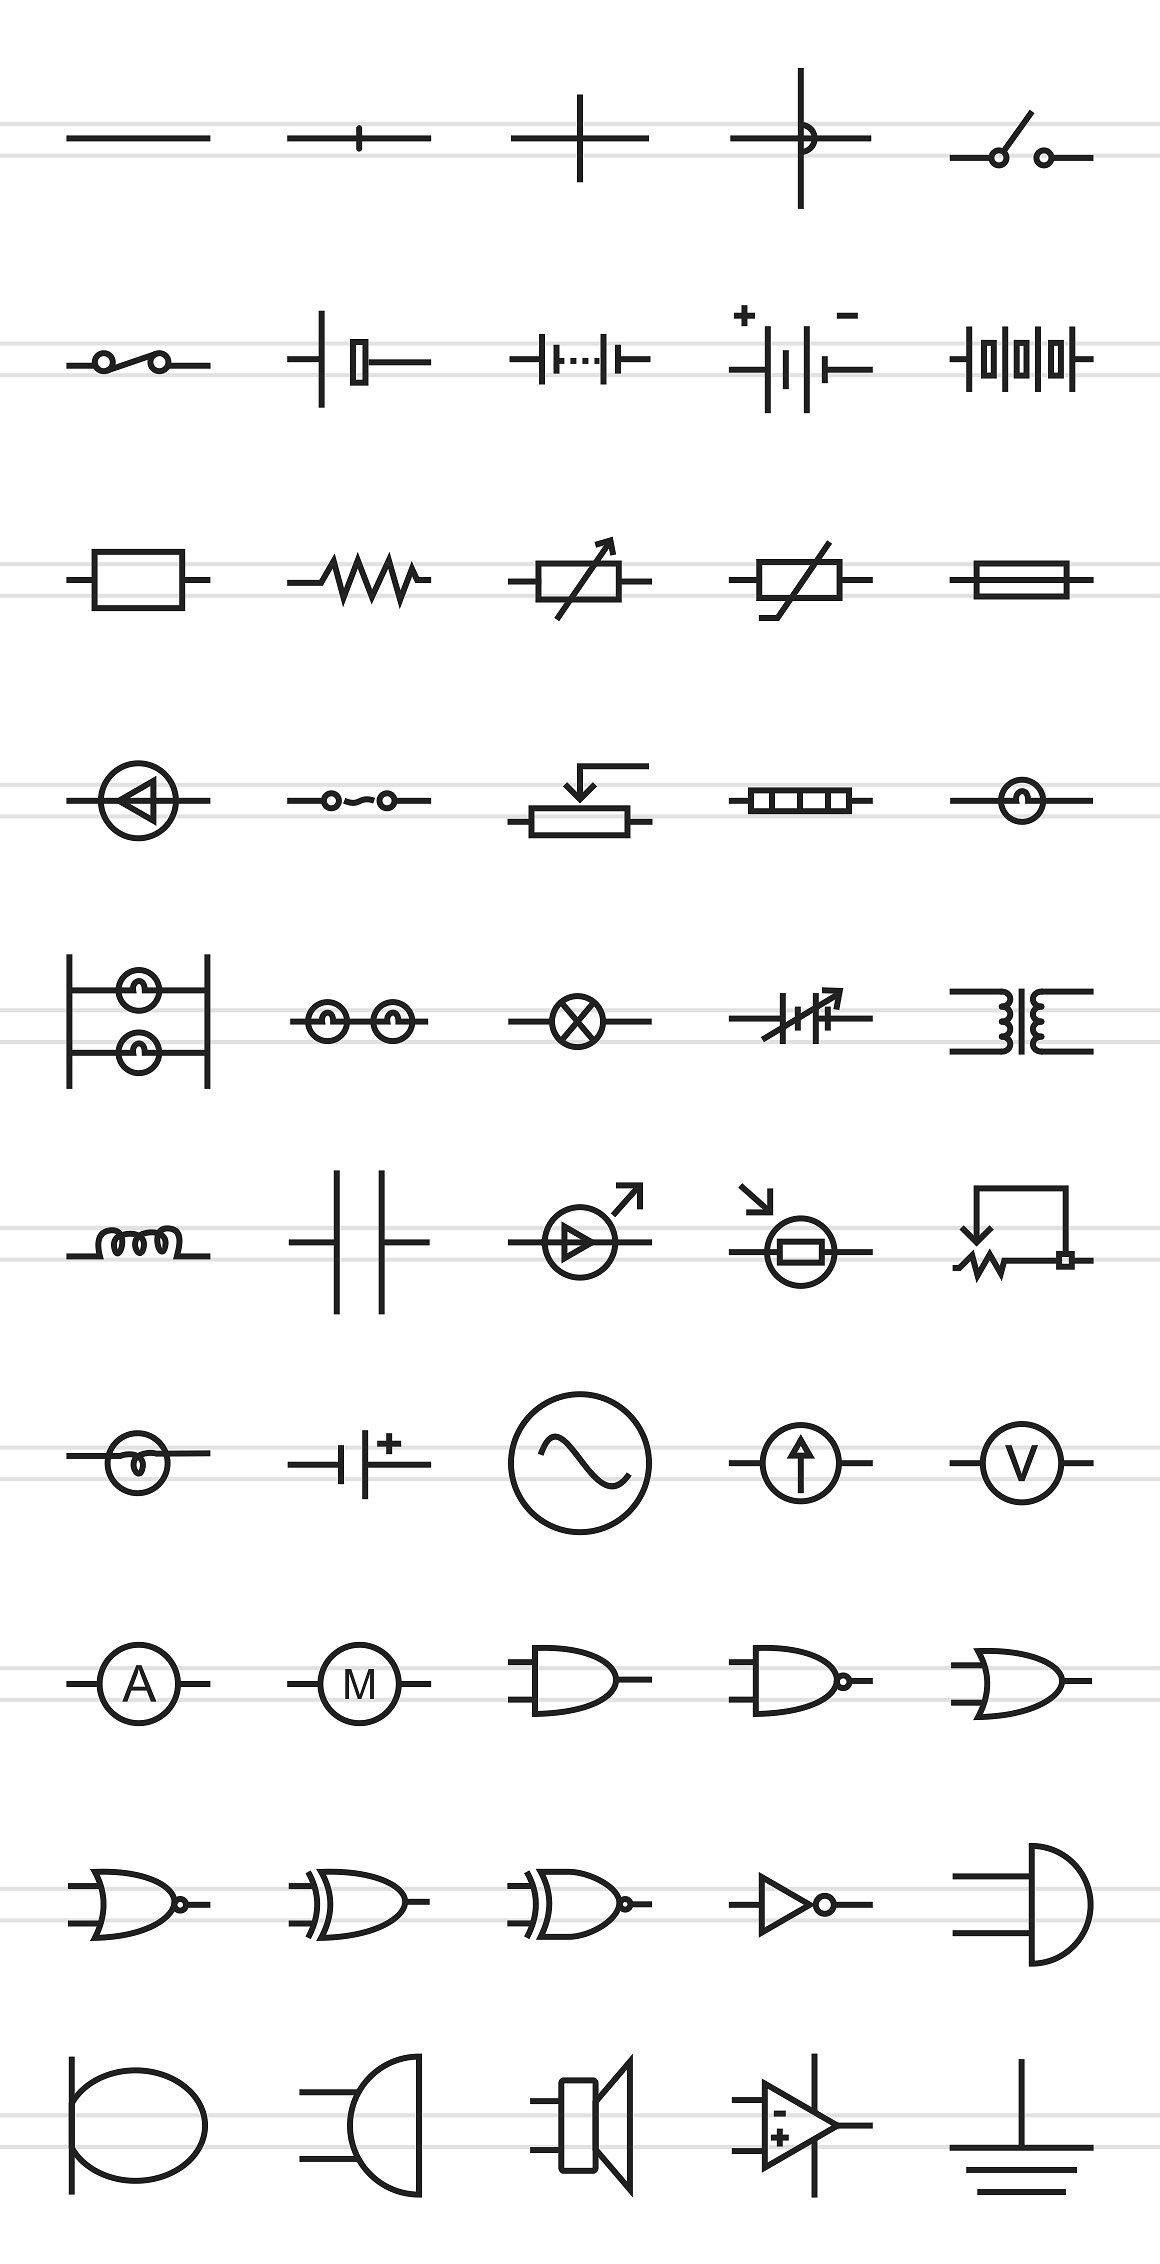 hight resolution of 50 electric circuits line icons closed cell joined switch